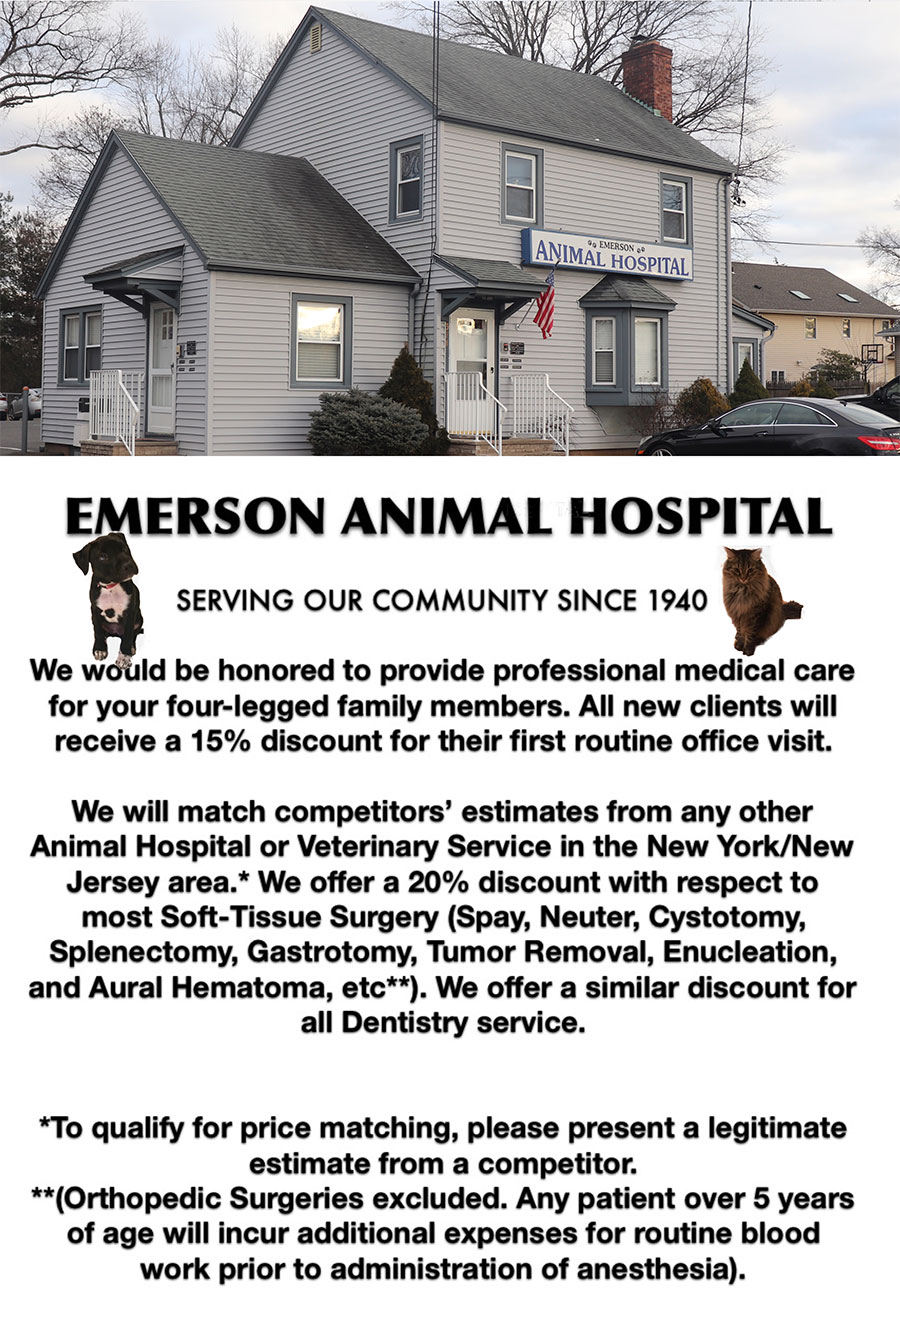 Emerson Animal Hospital